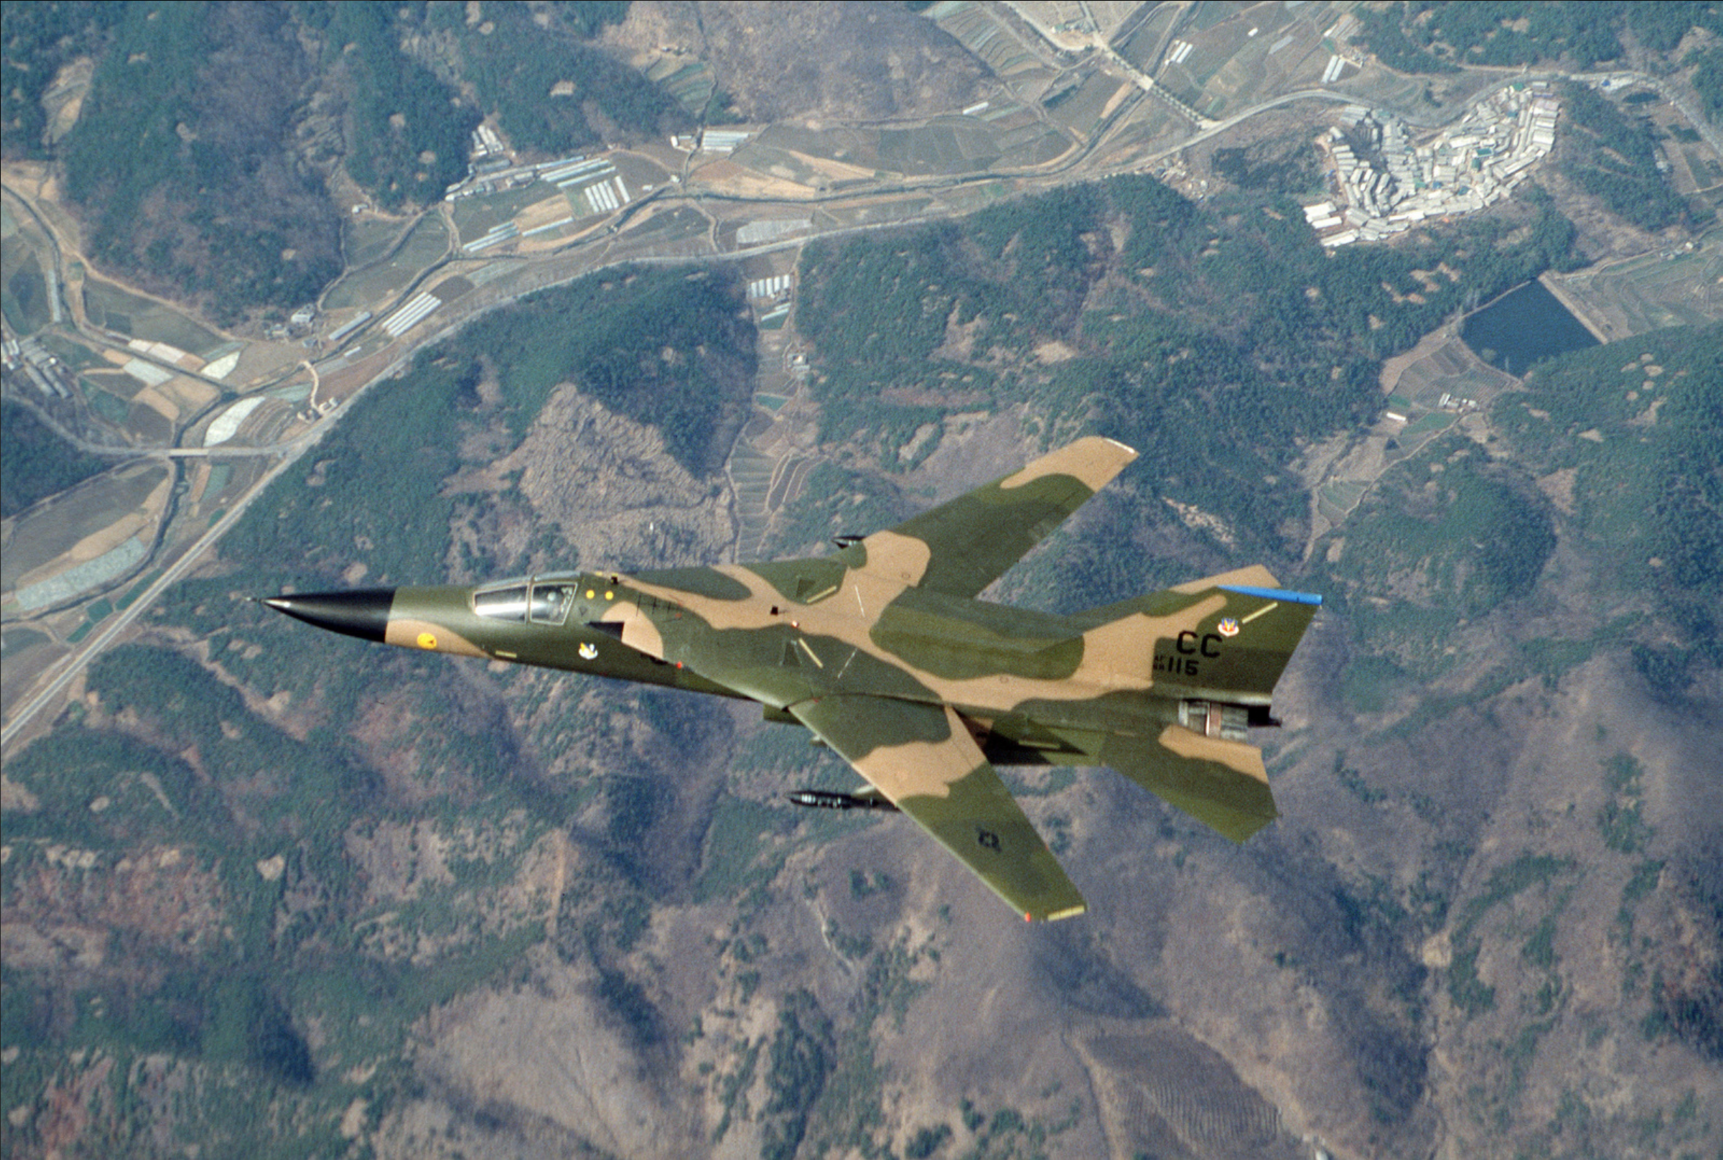 an_air-to-air_left_side_view_of_a_27th_tactical_fighter_wing_f-111dk.png